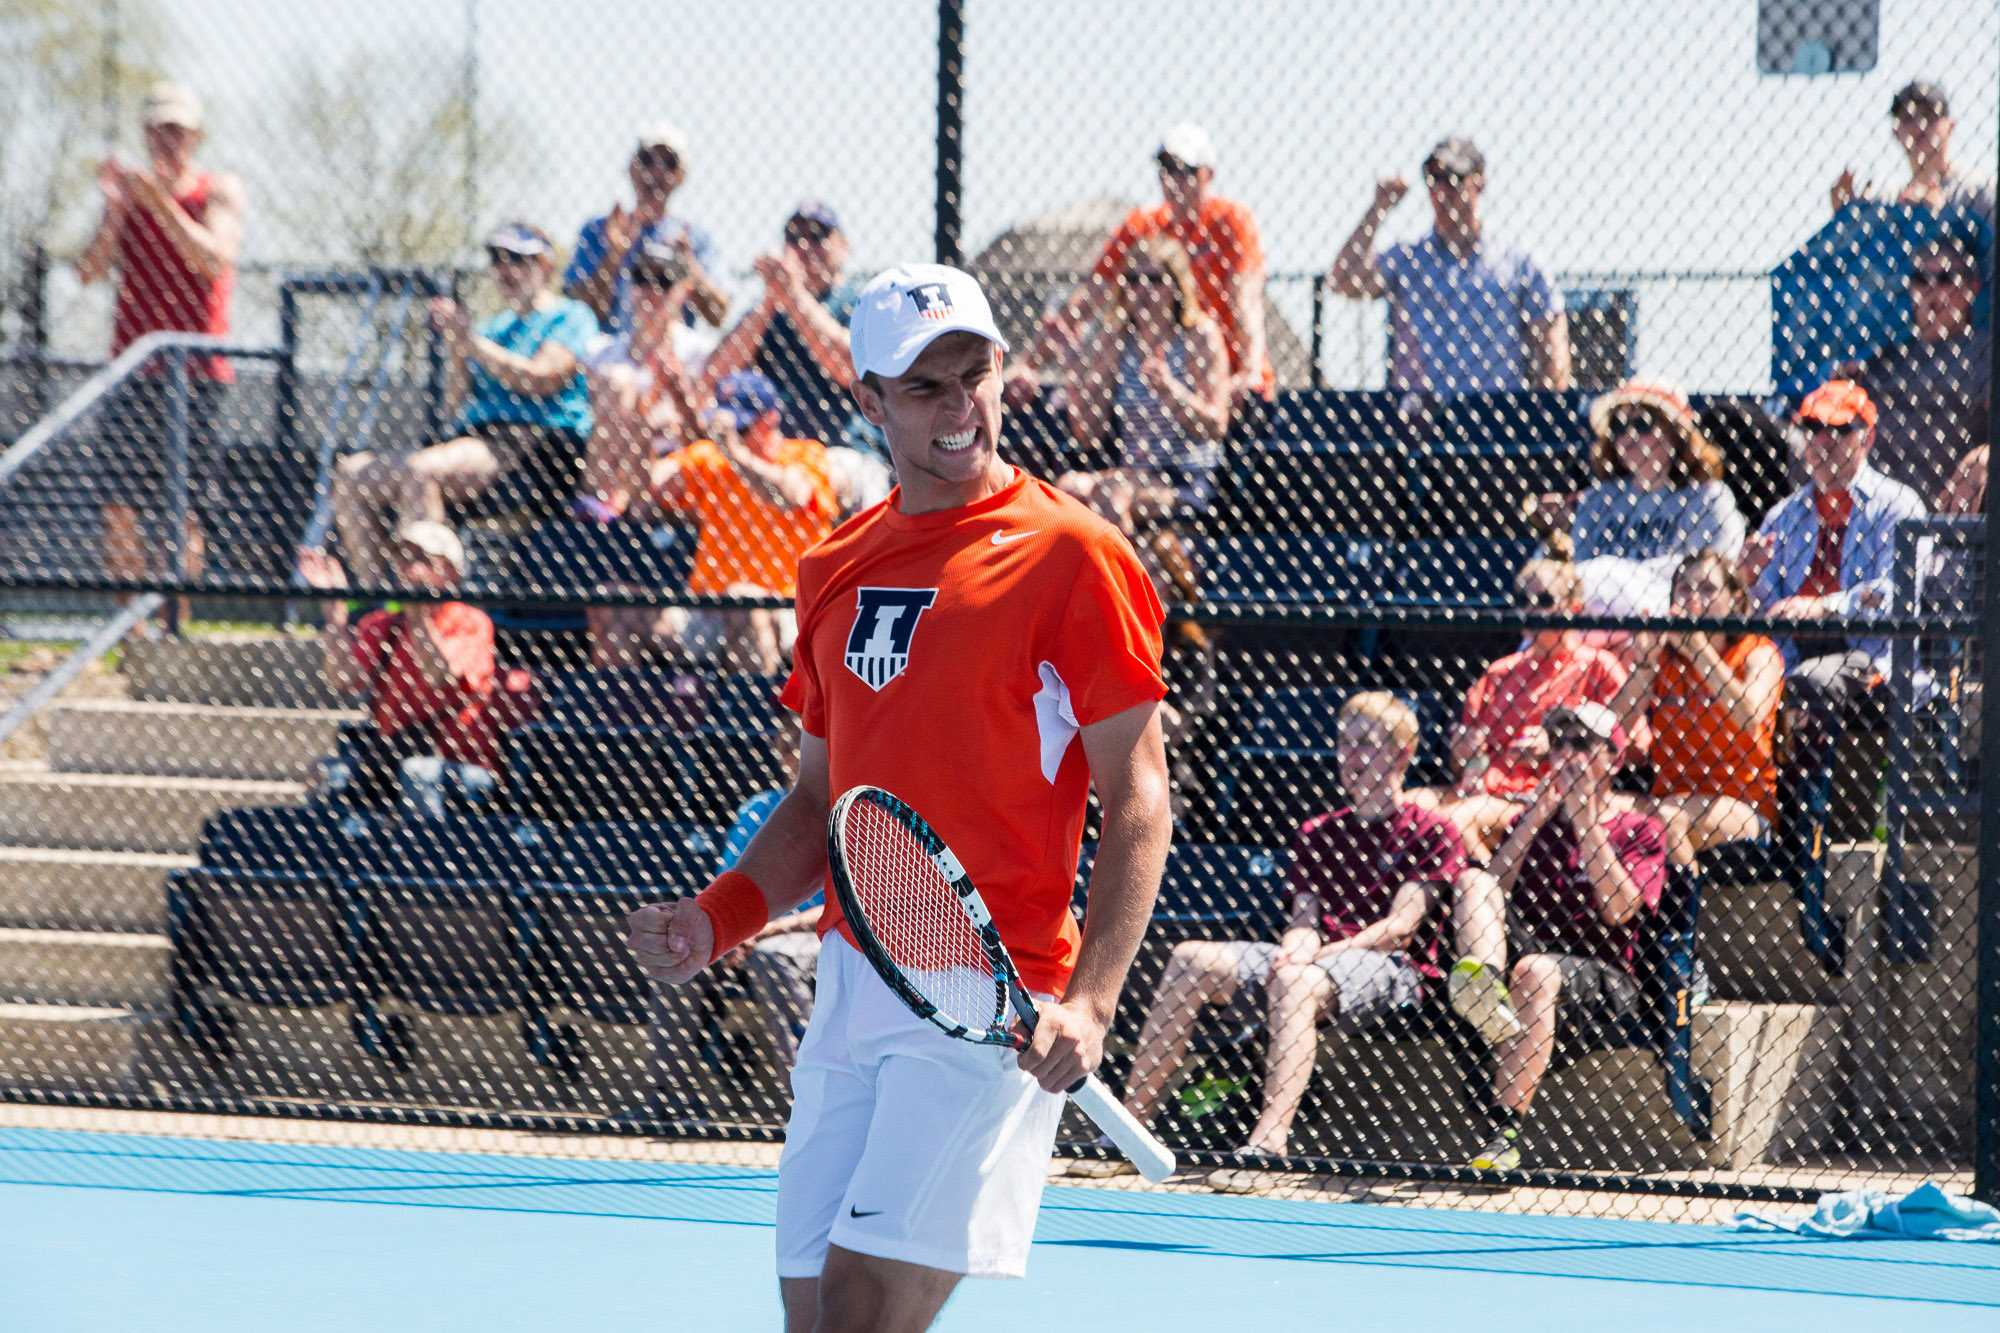 Illinois' Aleks Vukic celebrates after winning against Jathan Malik during the meet against No. 21 Michigan at the Atkins Tennis Center on April 17, 2016. The Illini won 4-1.